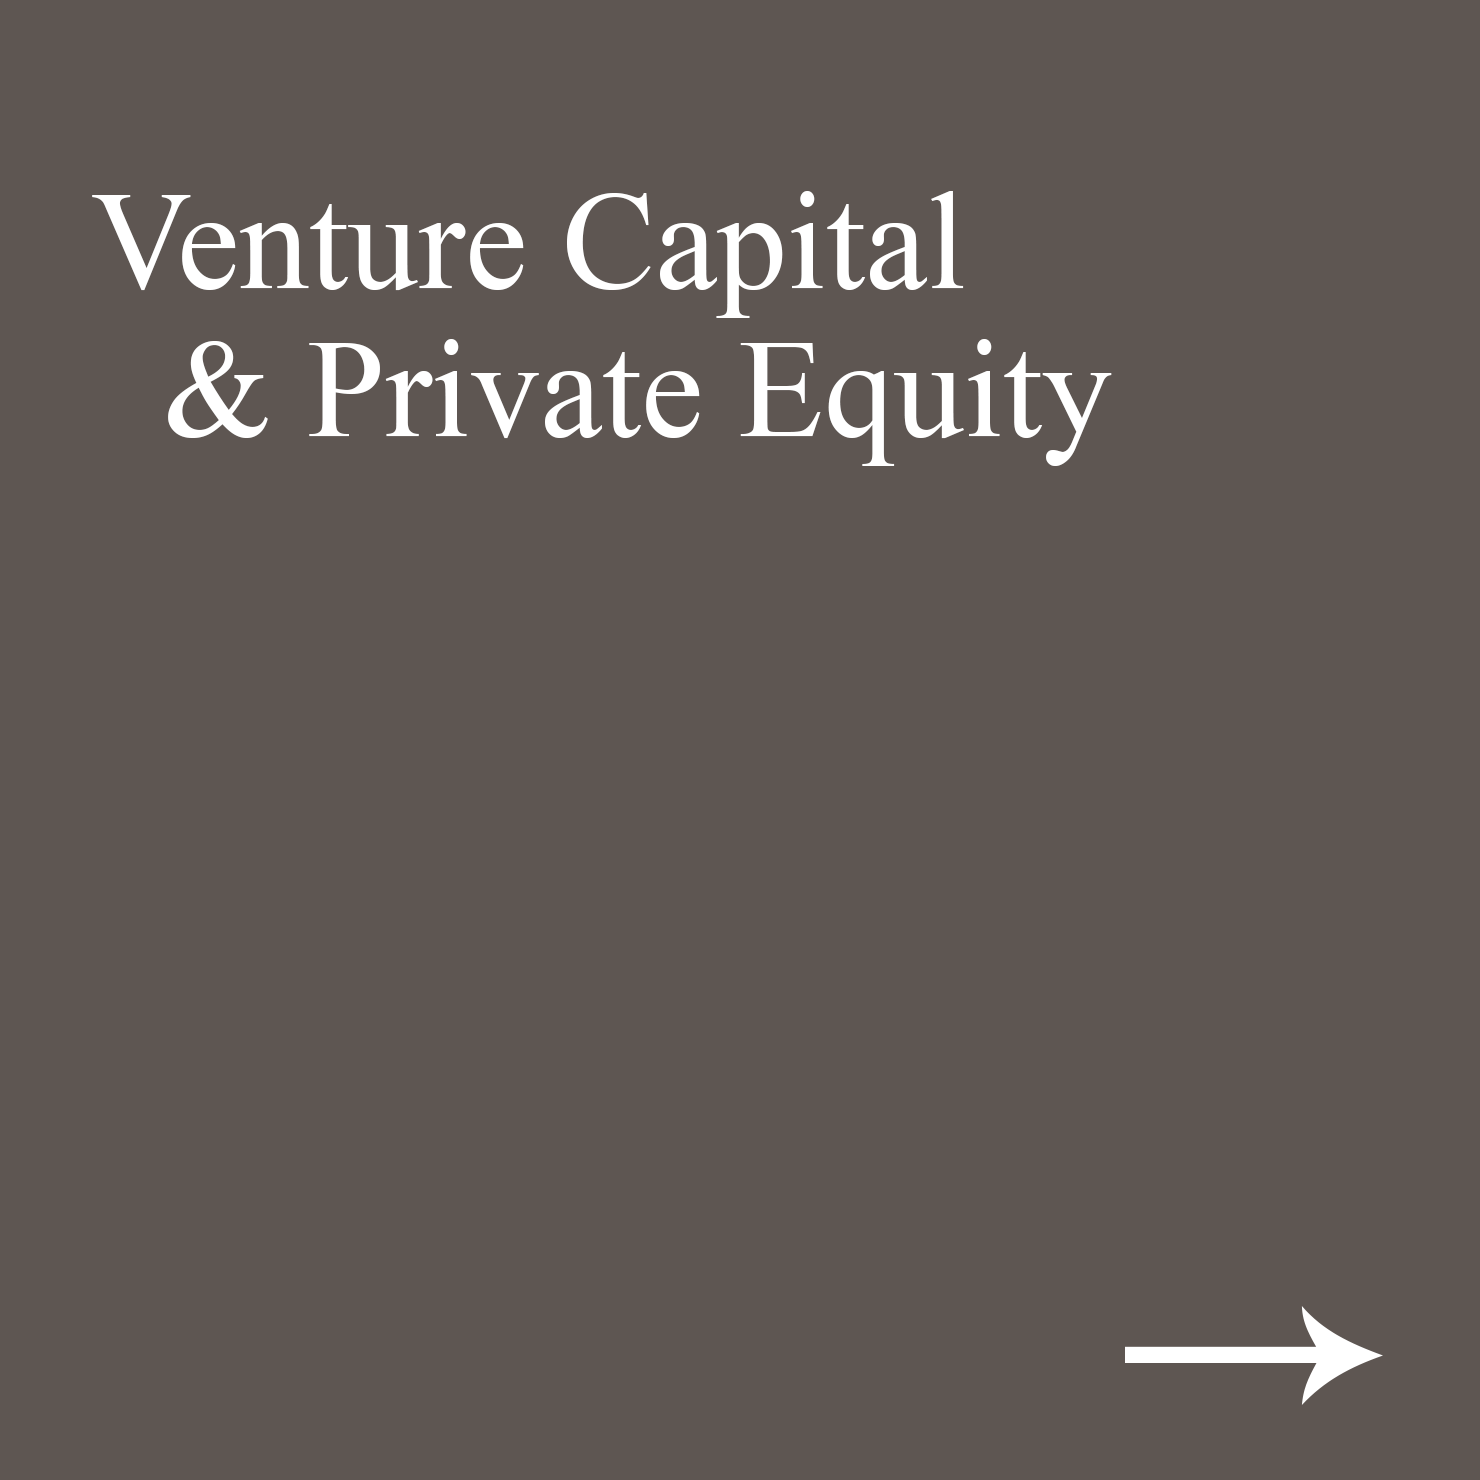 Venture Capital and Private Equity - 1.png